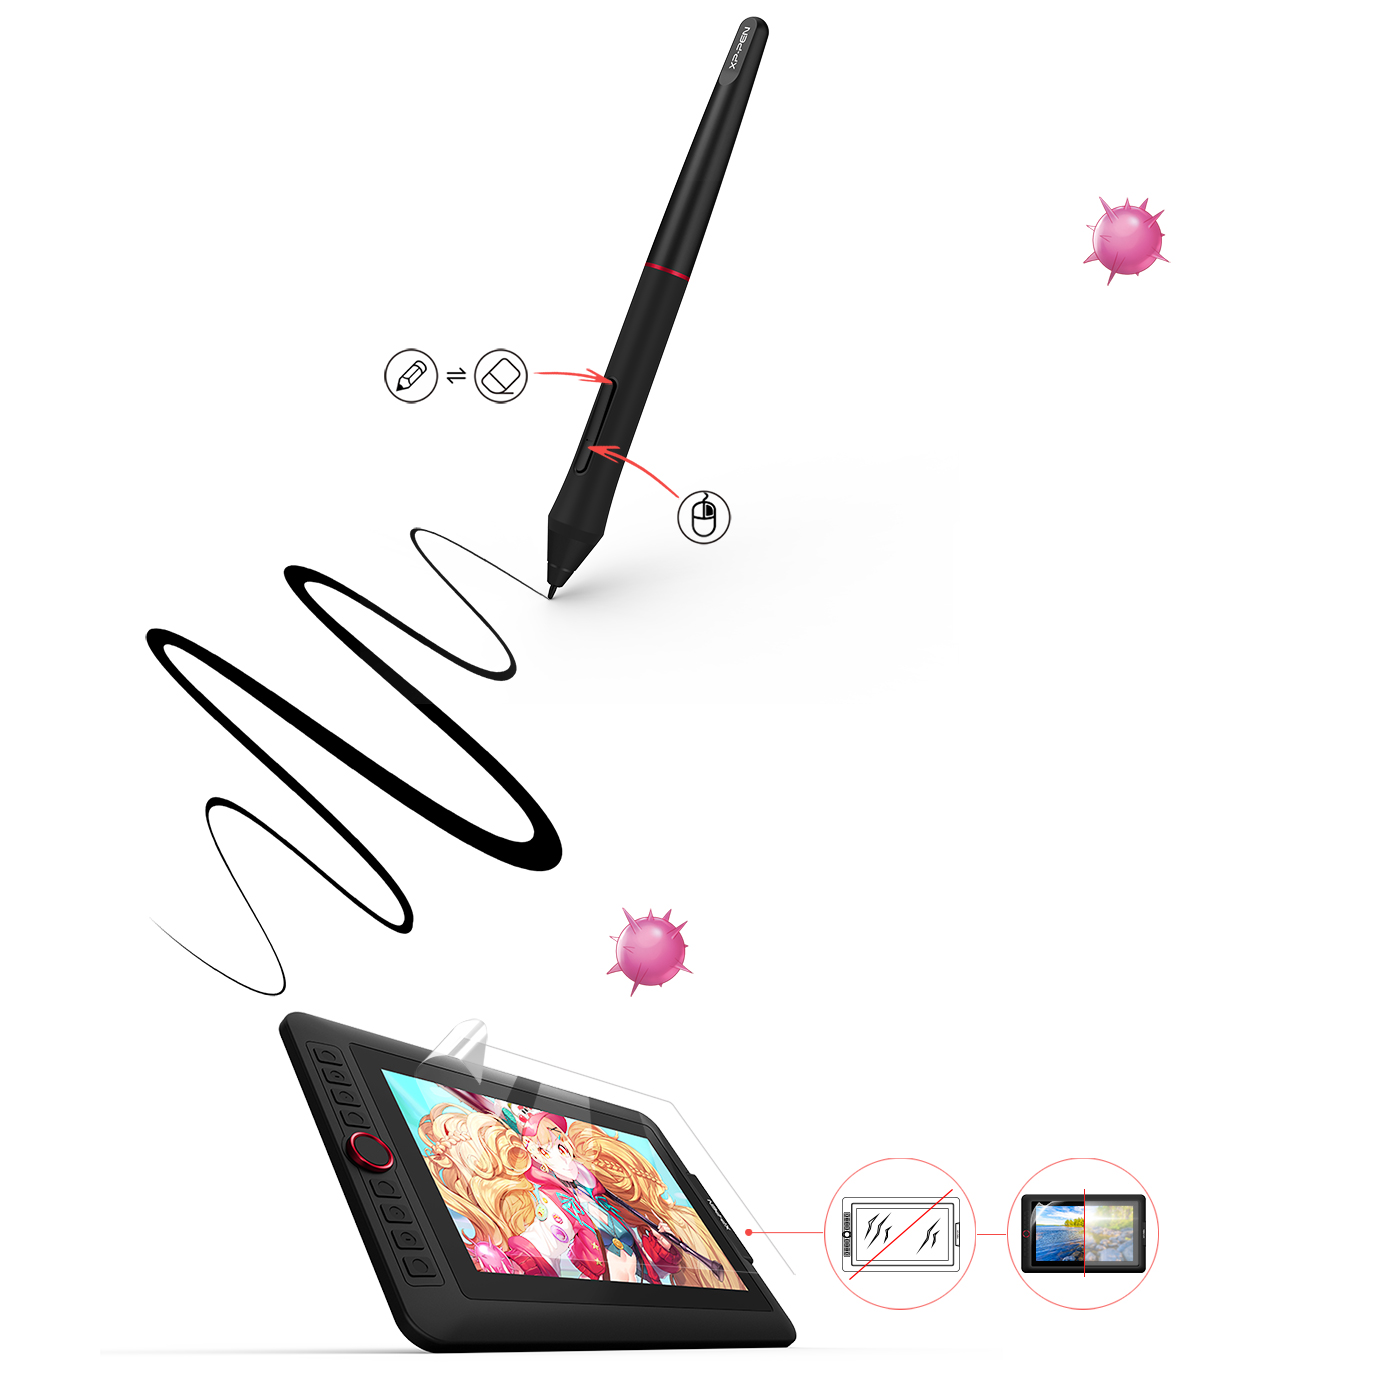 XP-Pen Artist 13.3 Pro computer drawing tablet With up to 8,192 levels of pressure sensitivity